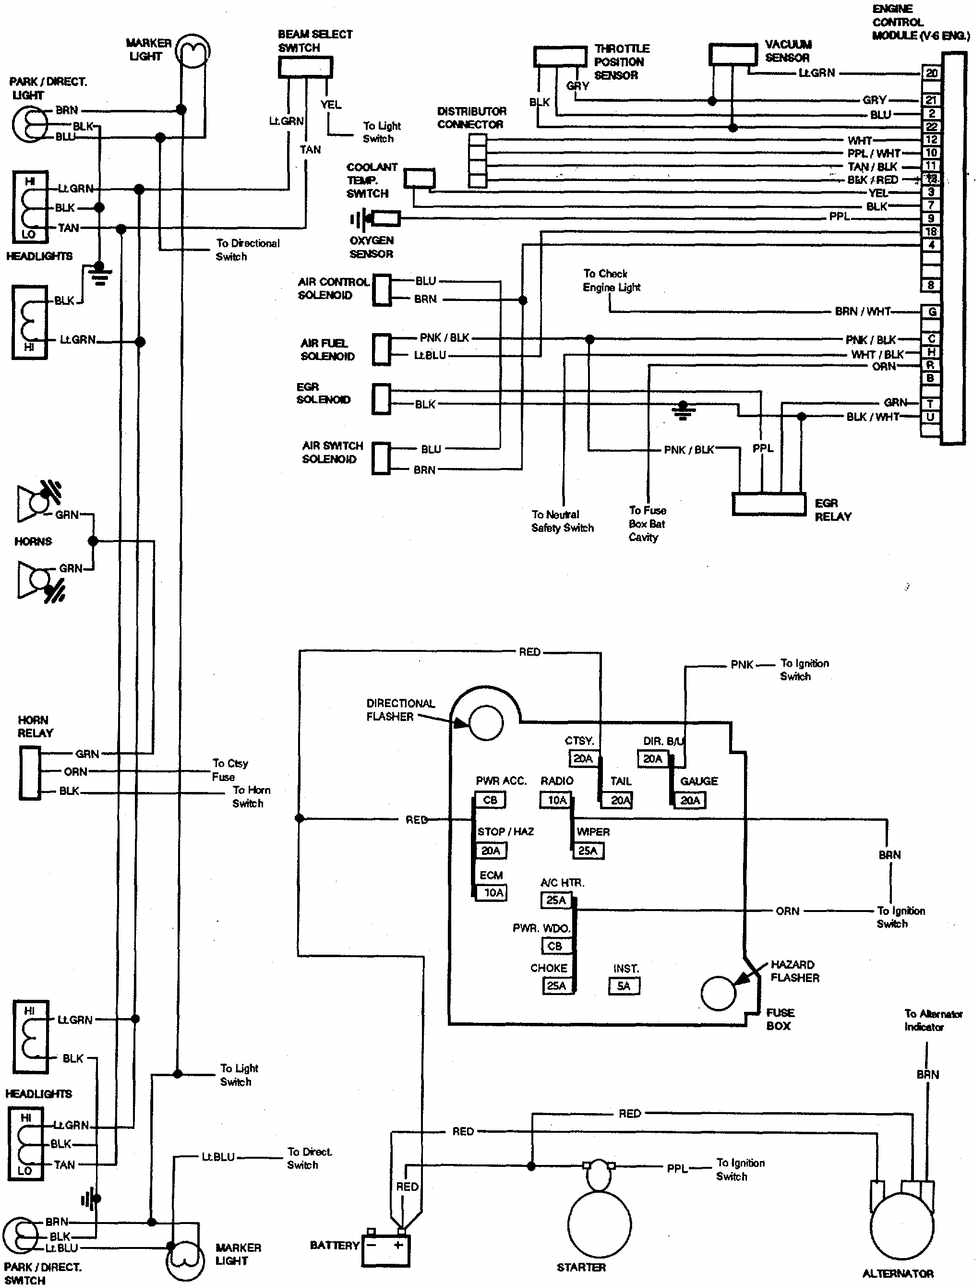 1970 Camaro Radio Wiring Diagram Bgmt Data 1972 Corvette Ignition Coil Basic Chevrolet V8 Trucks 1981 1987 Electrical Chevy Dash